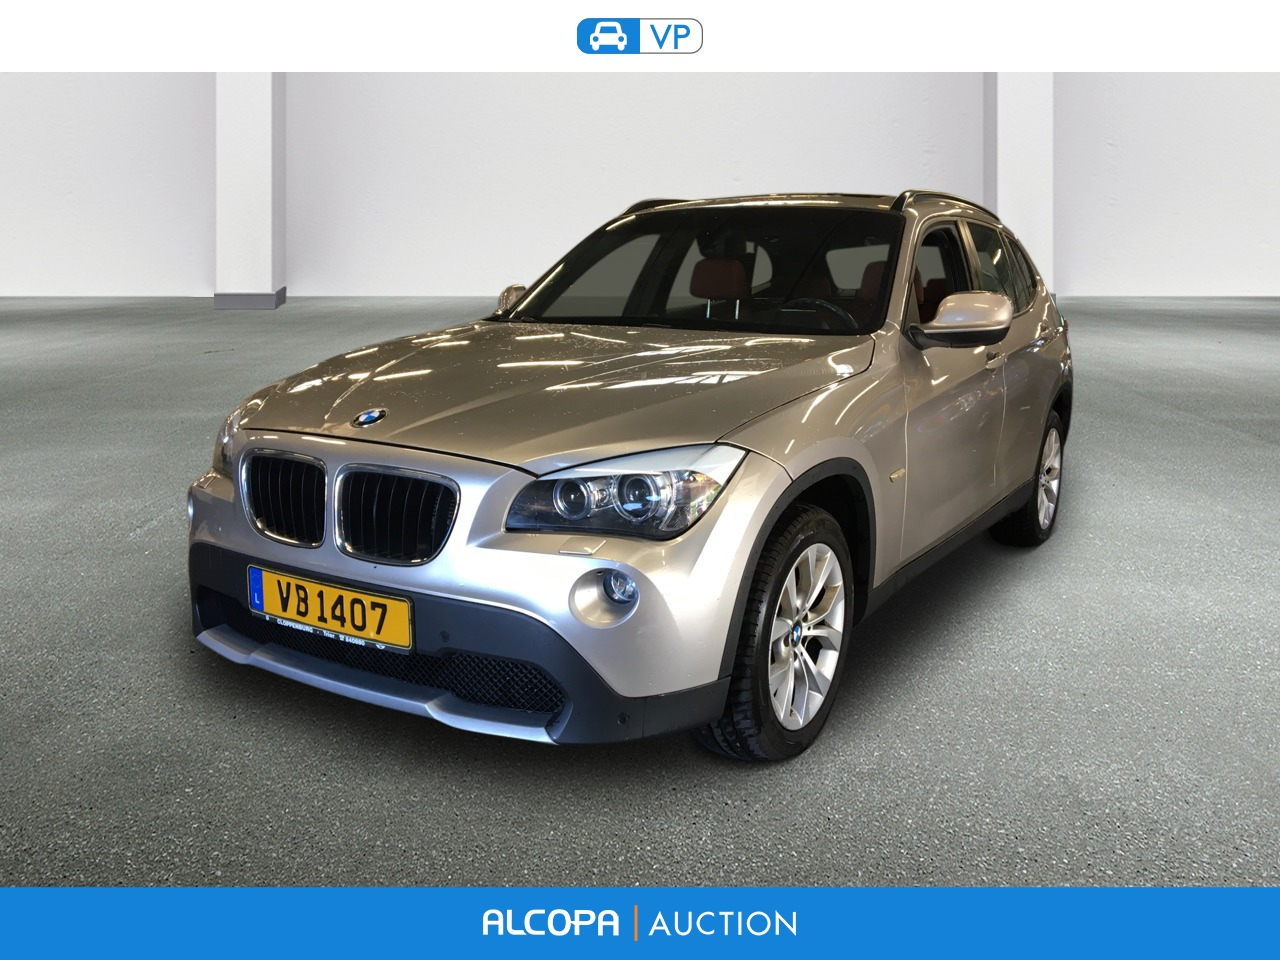 bmw x1 x1 xdrive 20d 177 ch luxe alcopa auction. Black Bedroom Furniture Sets. Home Design Ideas